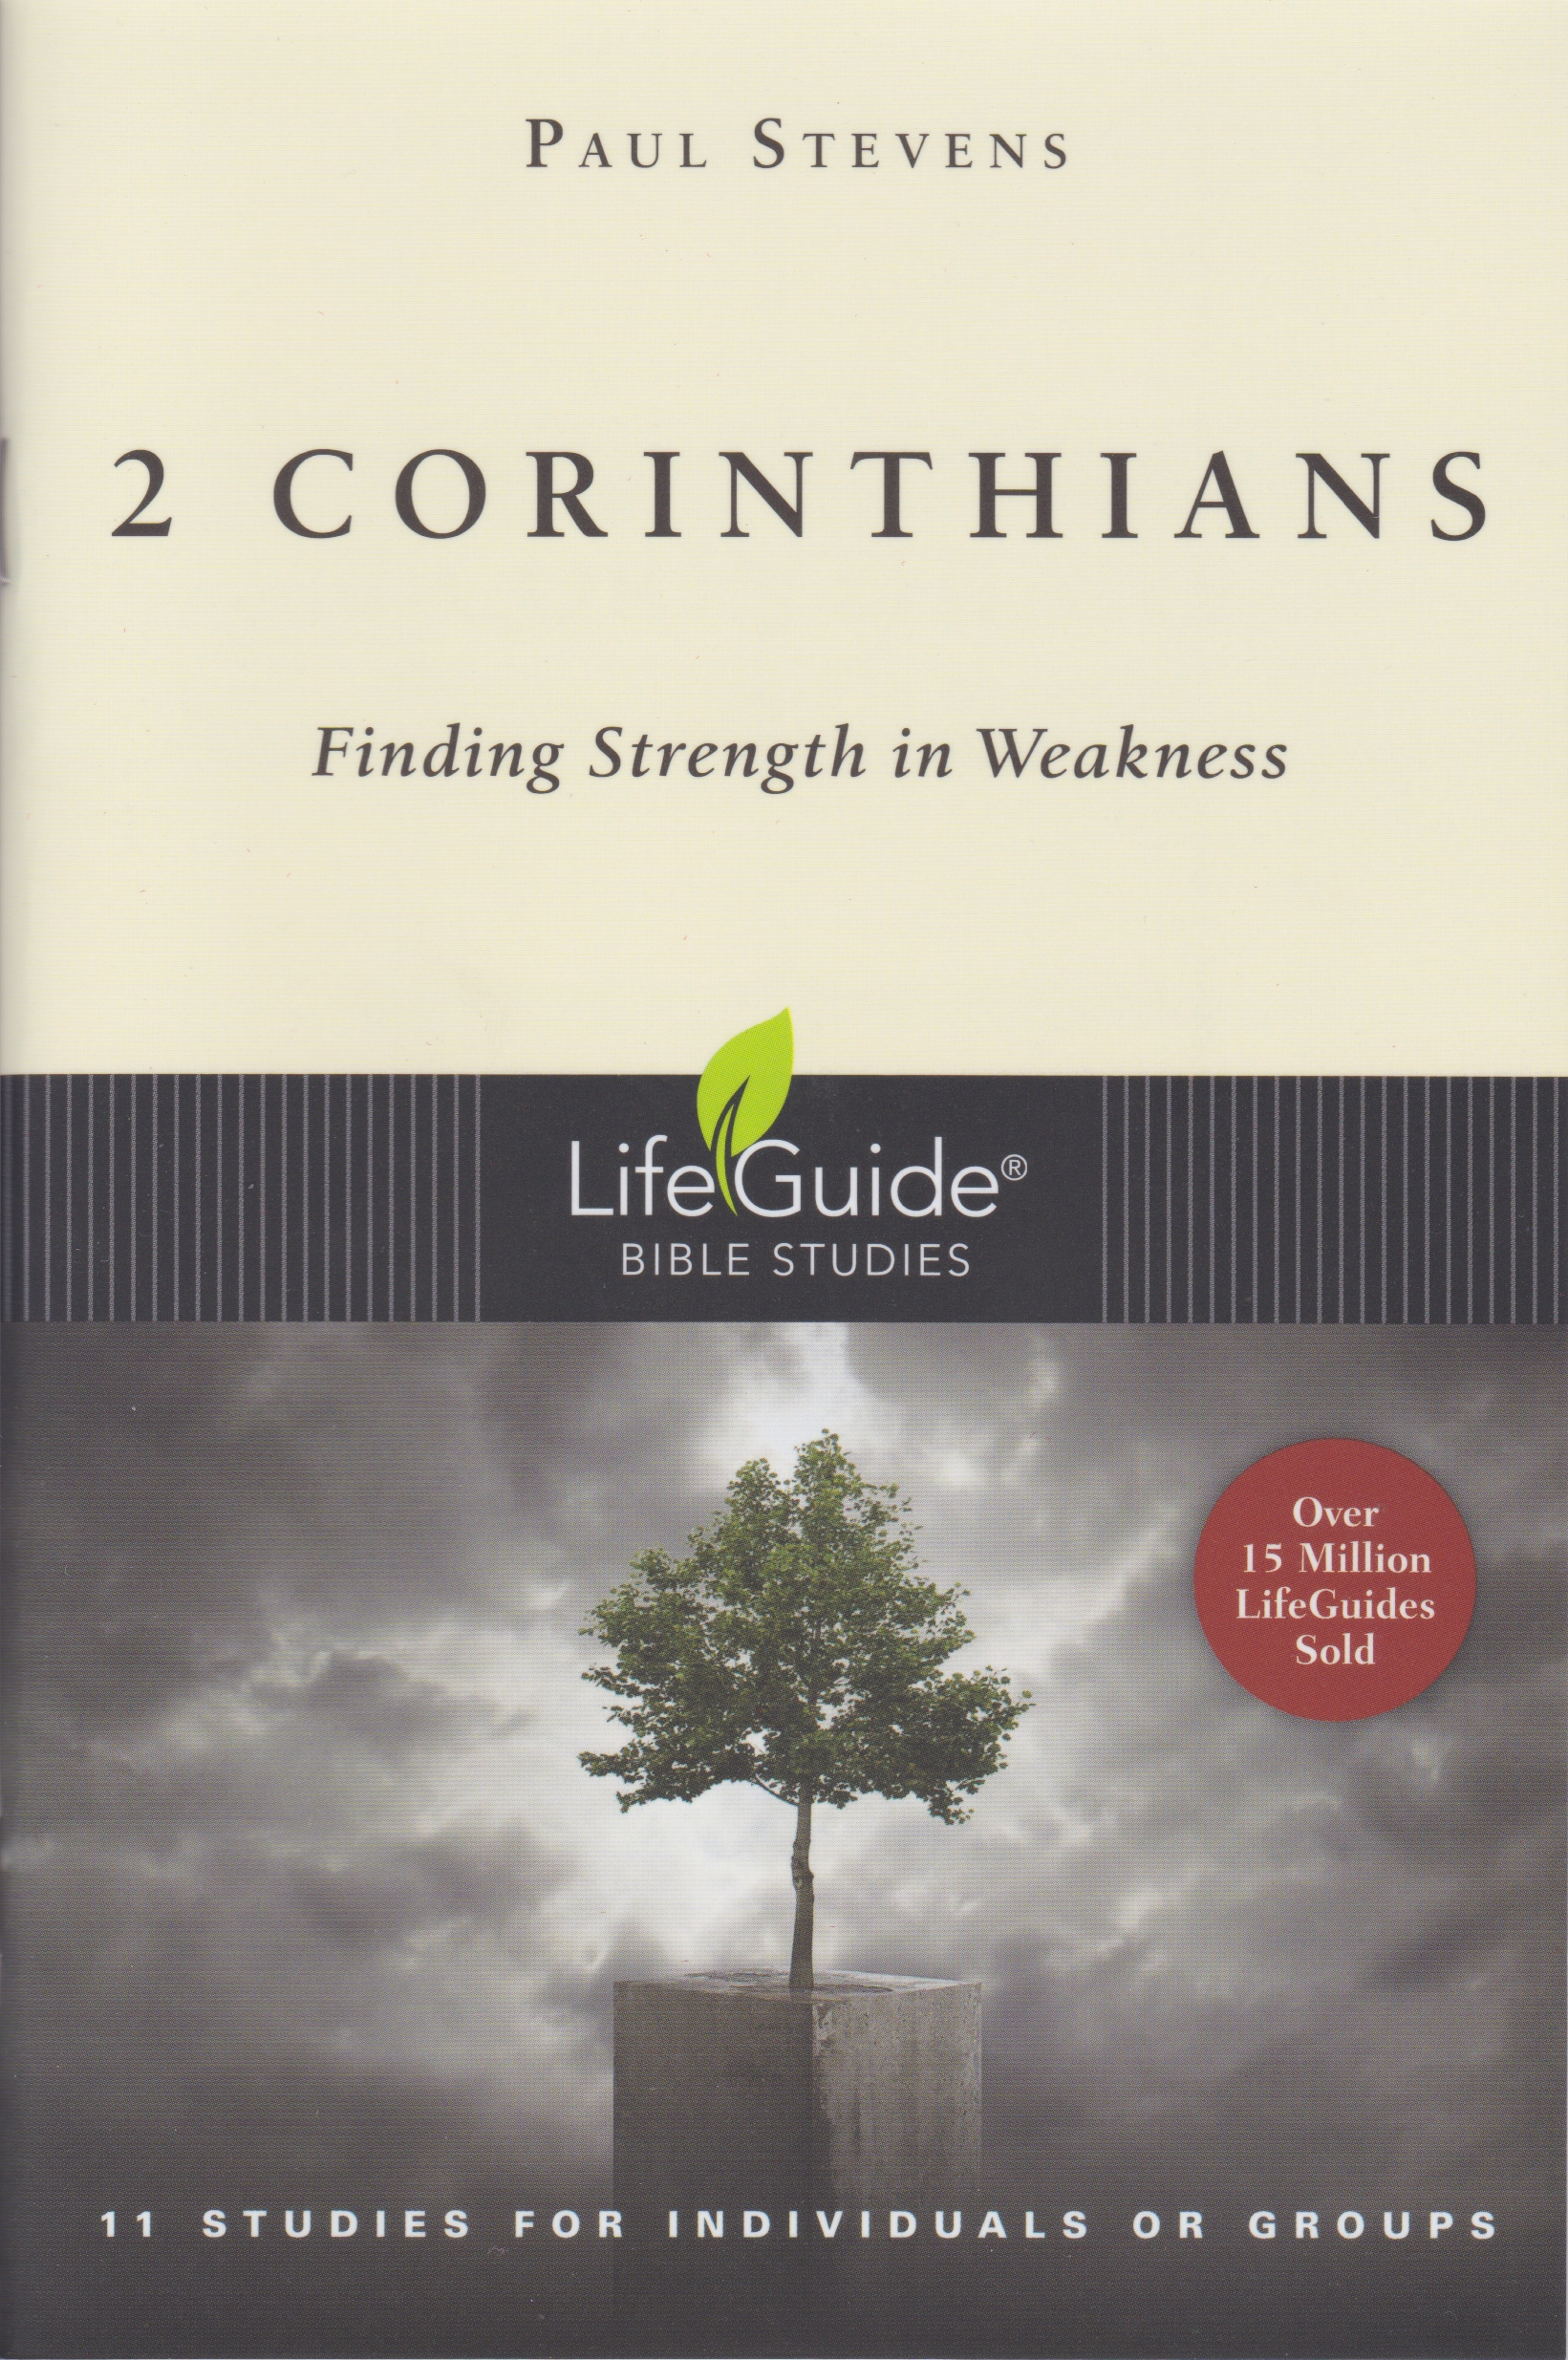 2 Corinthians - Finding strength in weakness